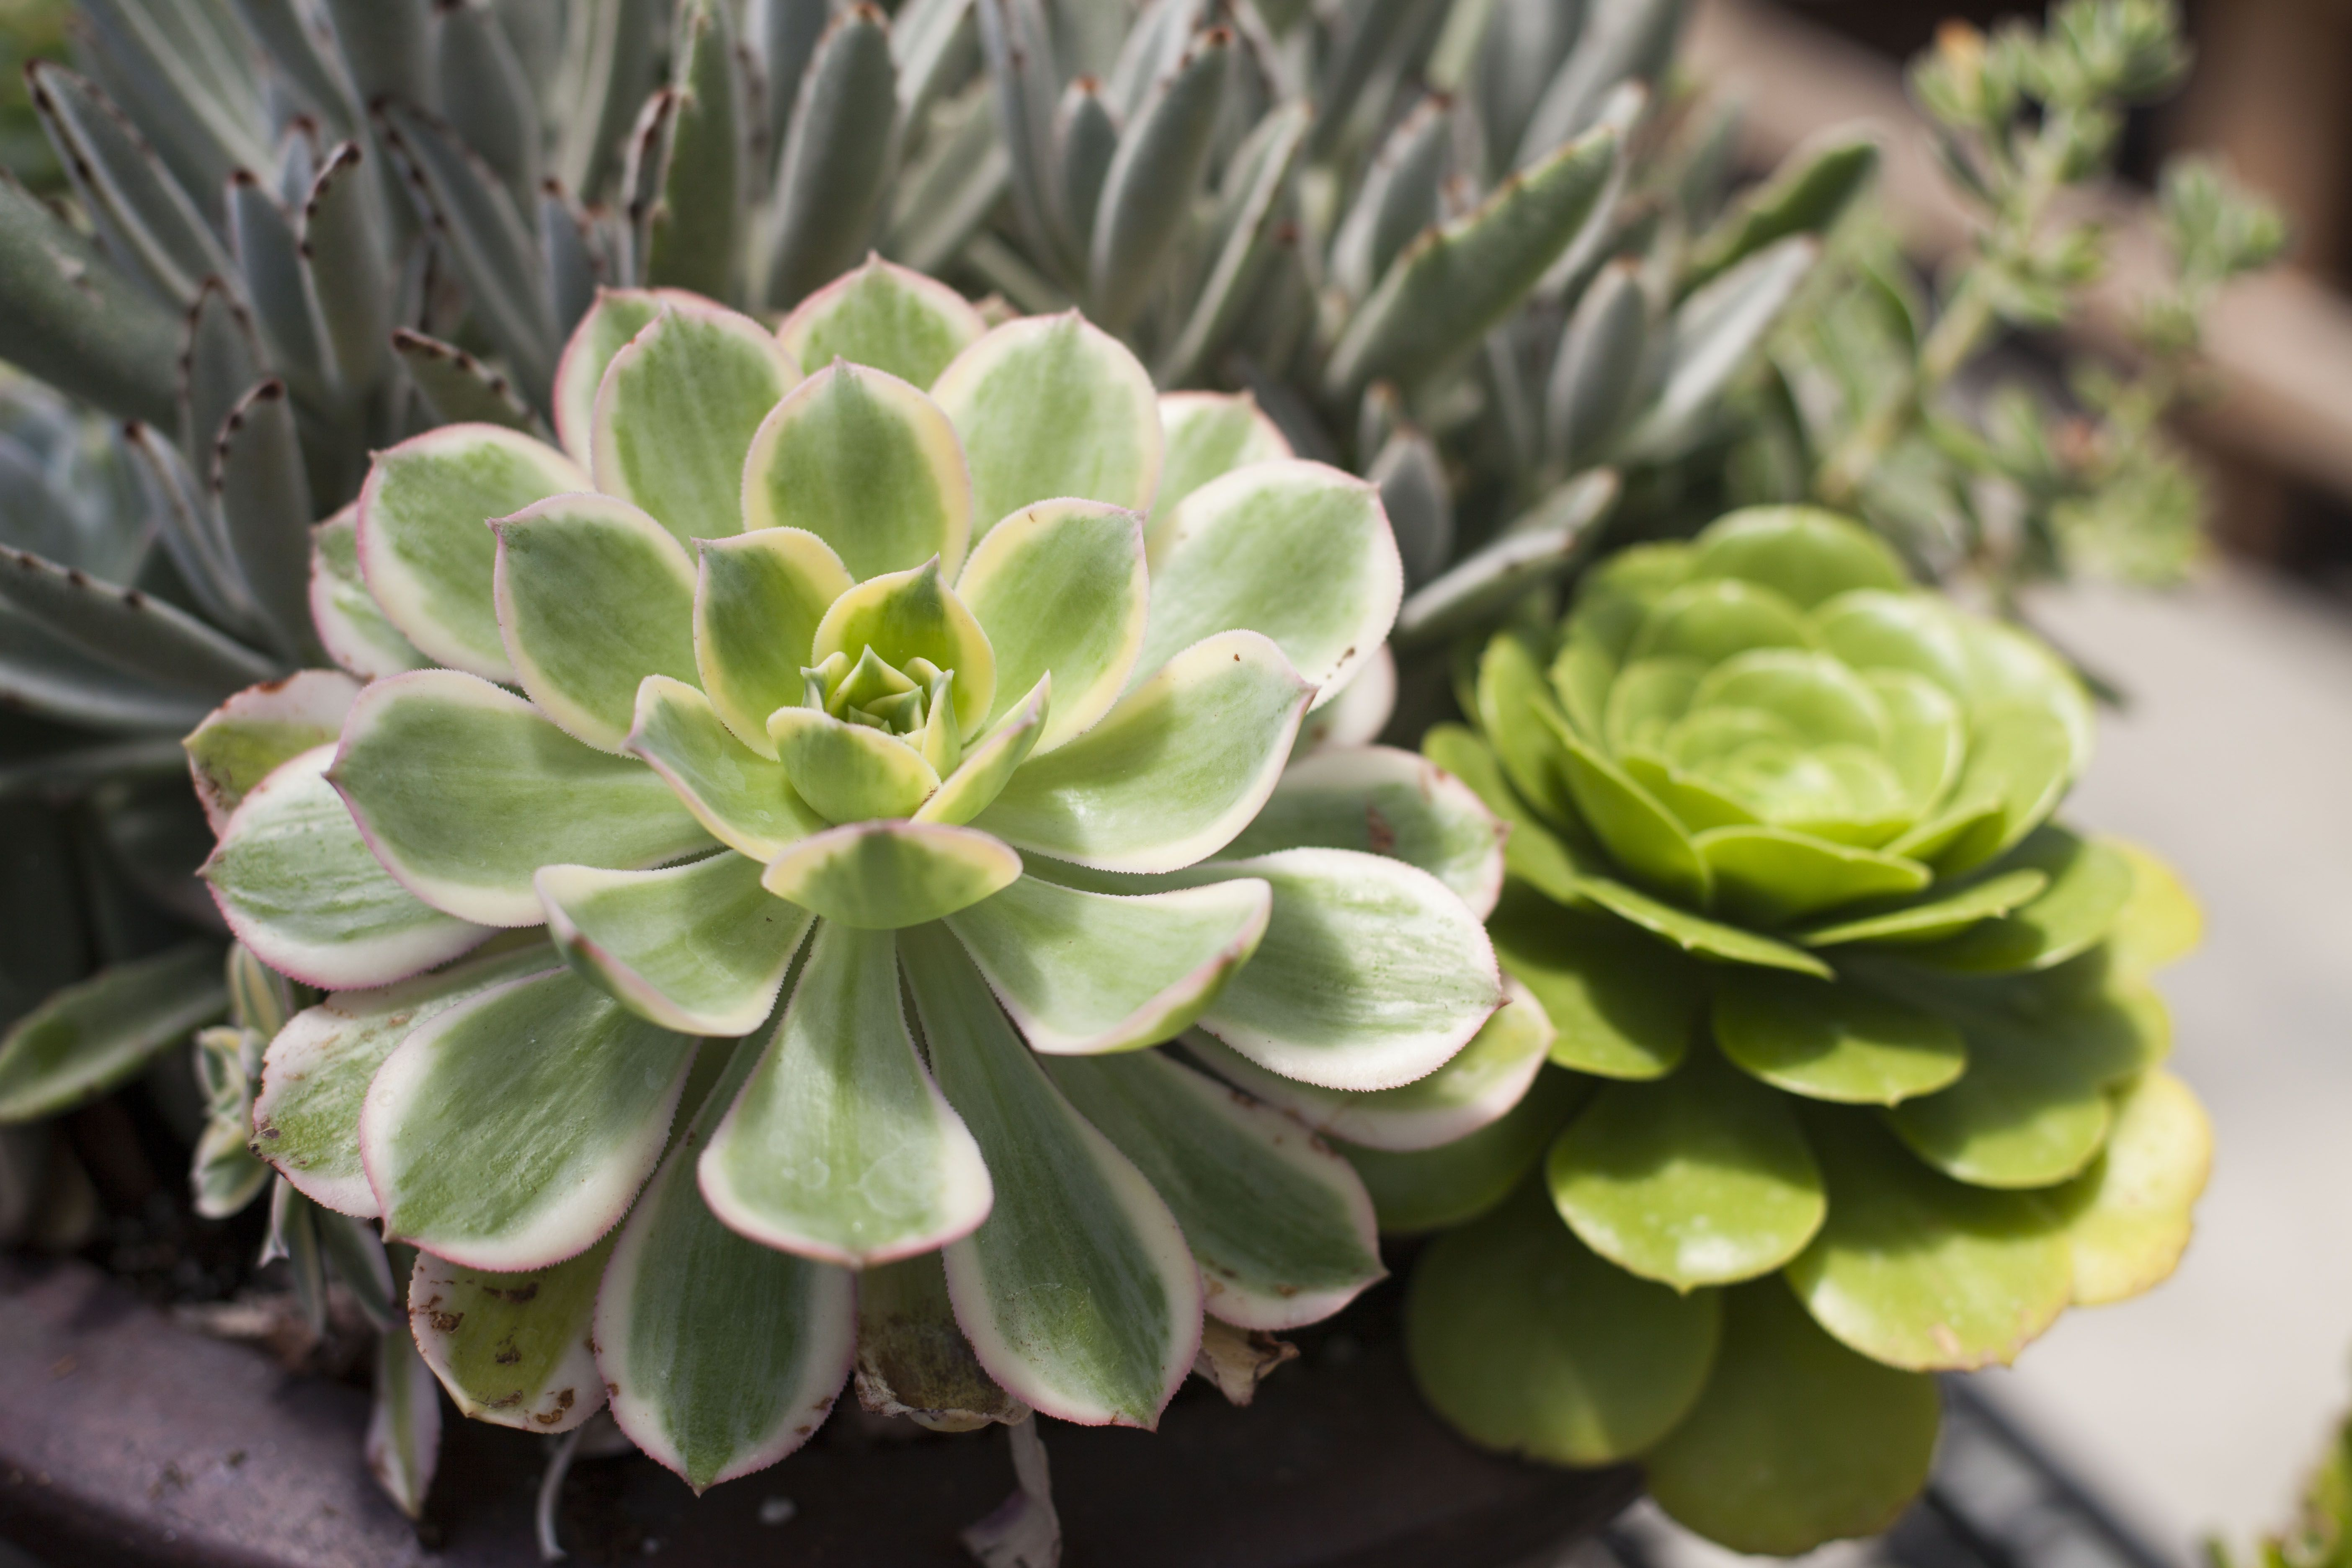 Showcasing Drought Tolerant Plants